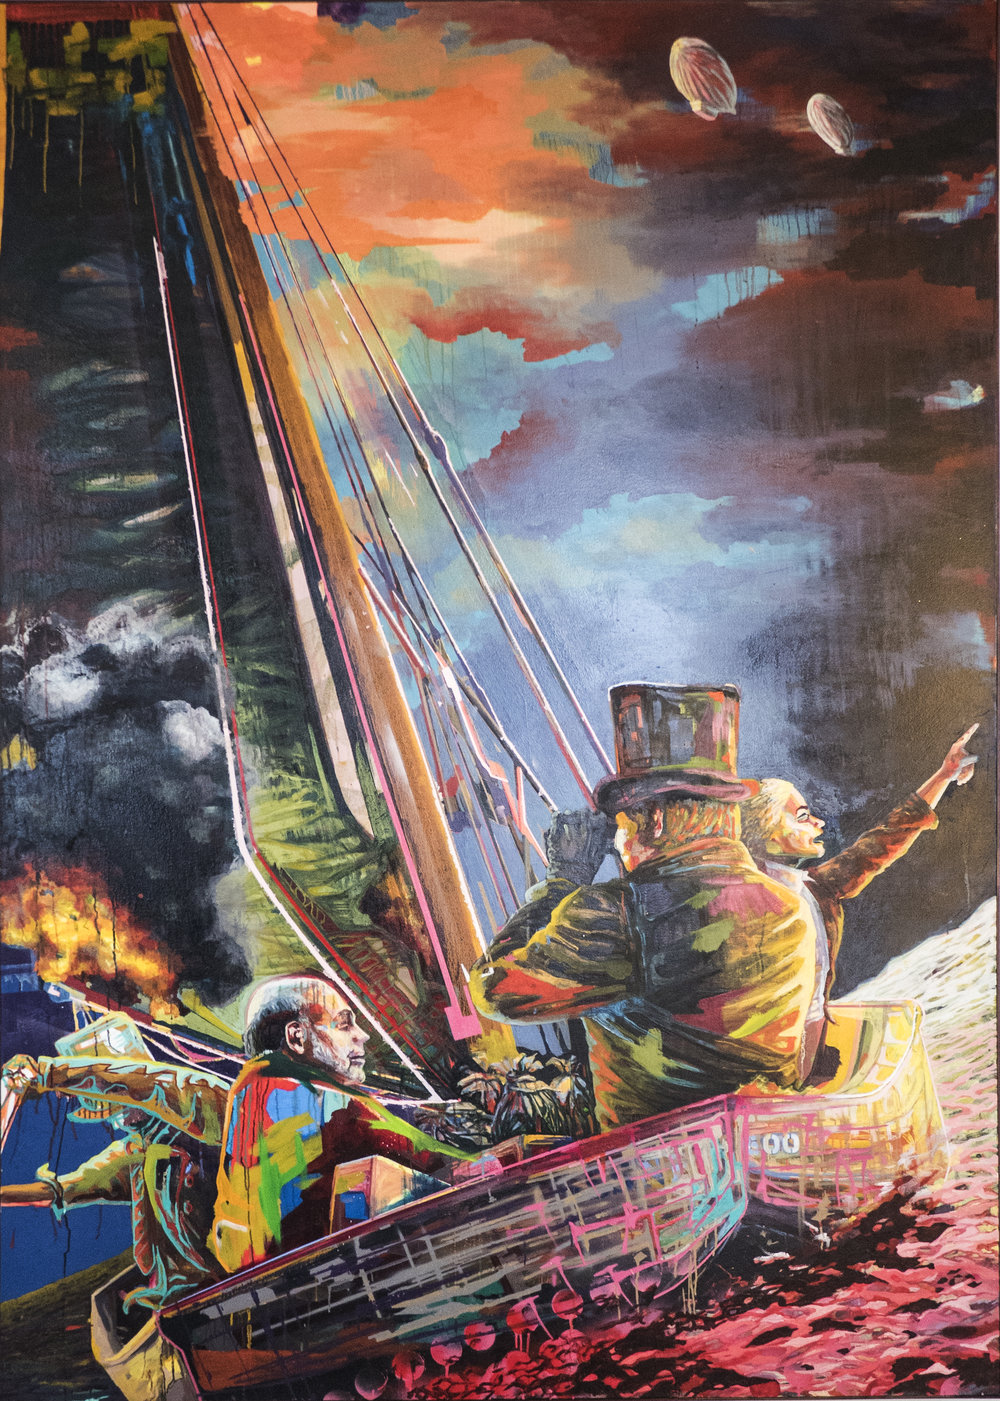 Morning Skies  | oil, aerosol on canvas | 9' x 6' (SOLD)